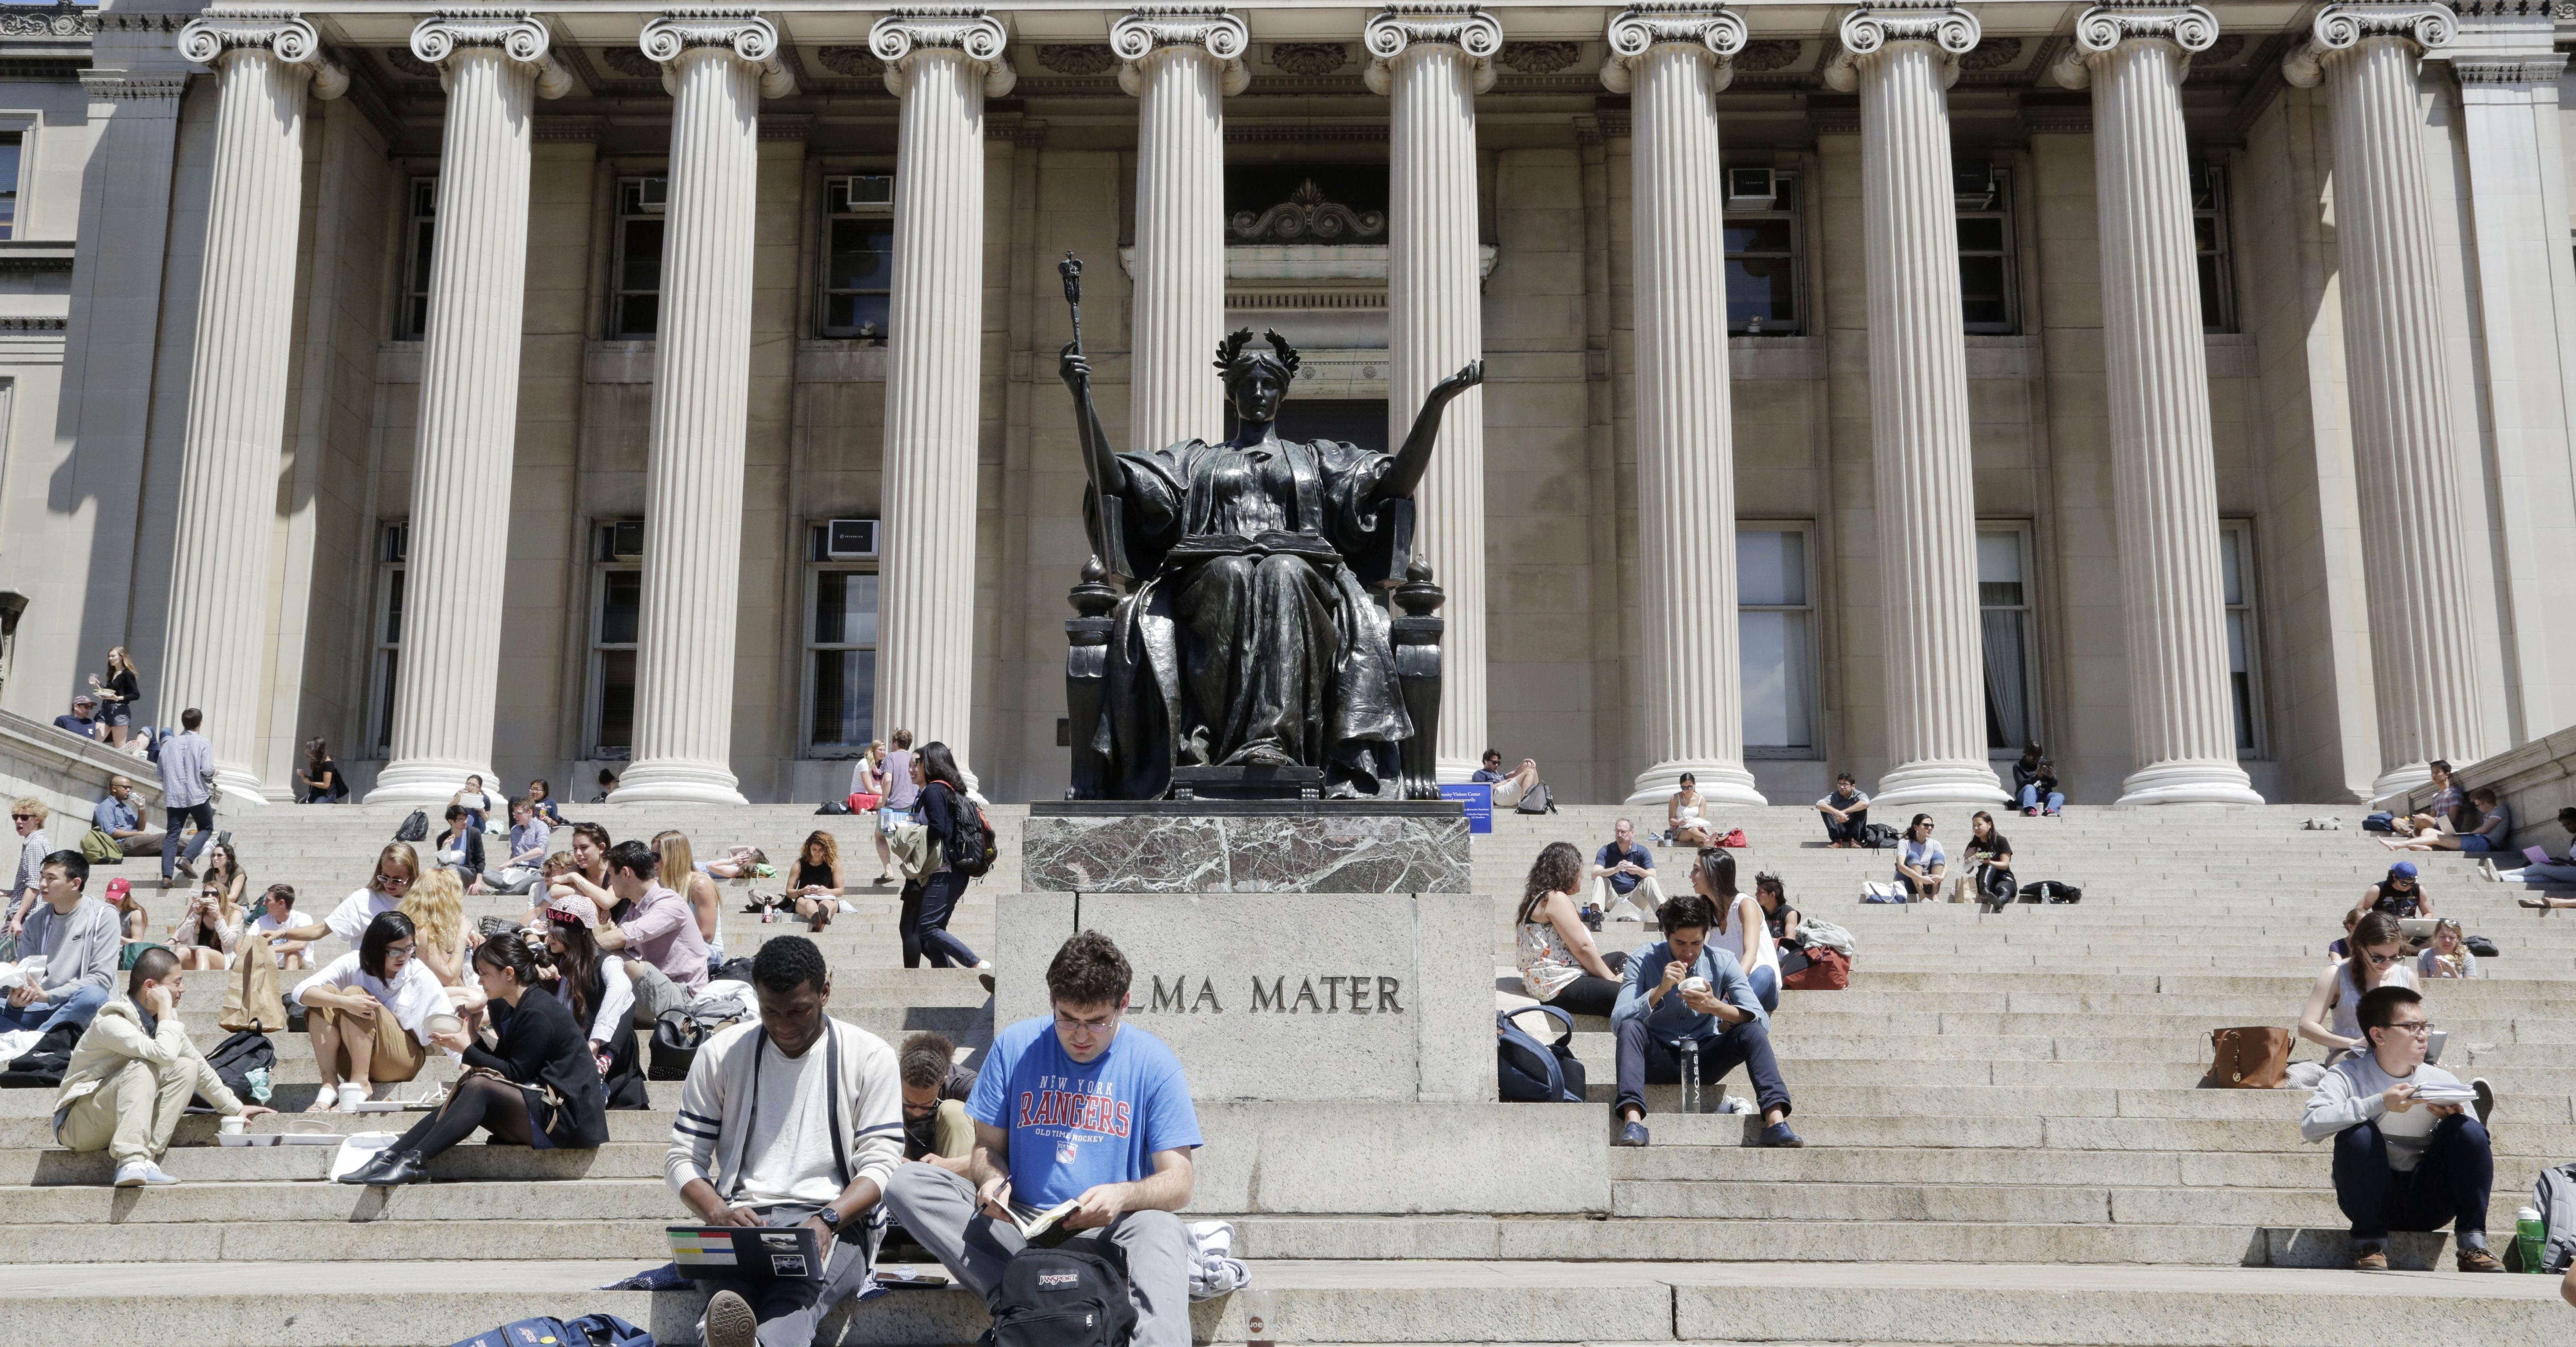 Students sunbathe on the steps of Columbia University's Low Memorial Library next to Daniel Chester French's sculpture, Alma Mater, April 29, 2015 in New York.